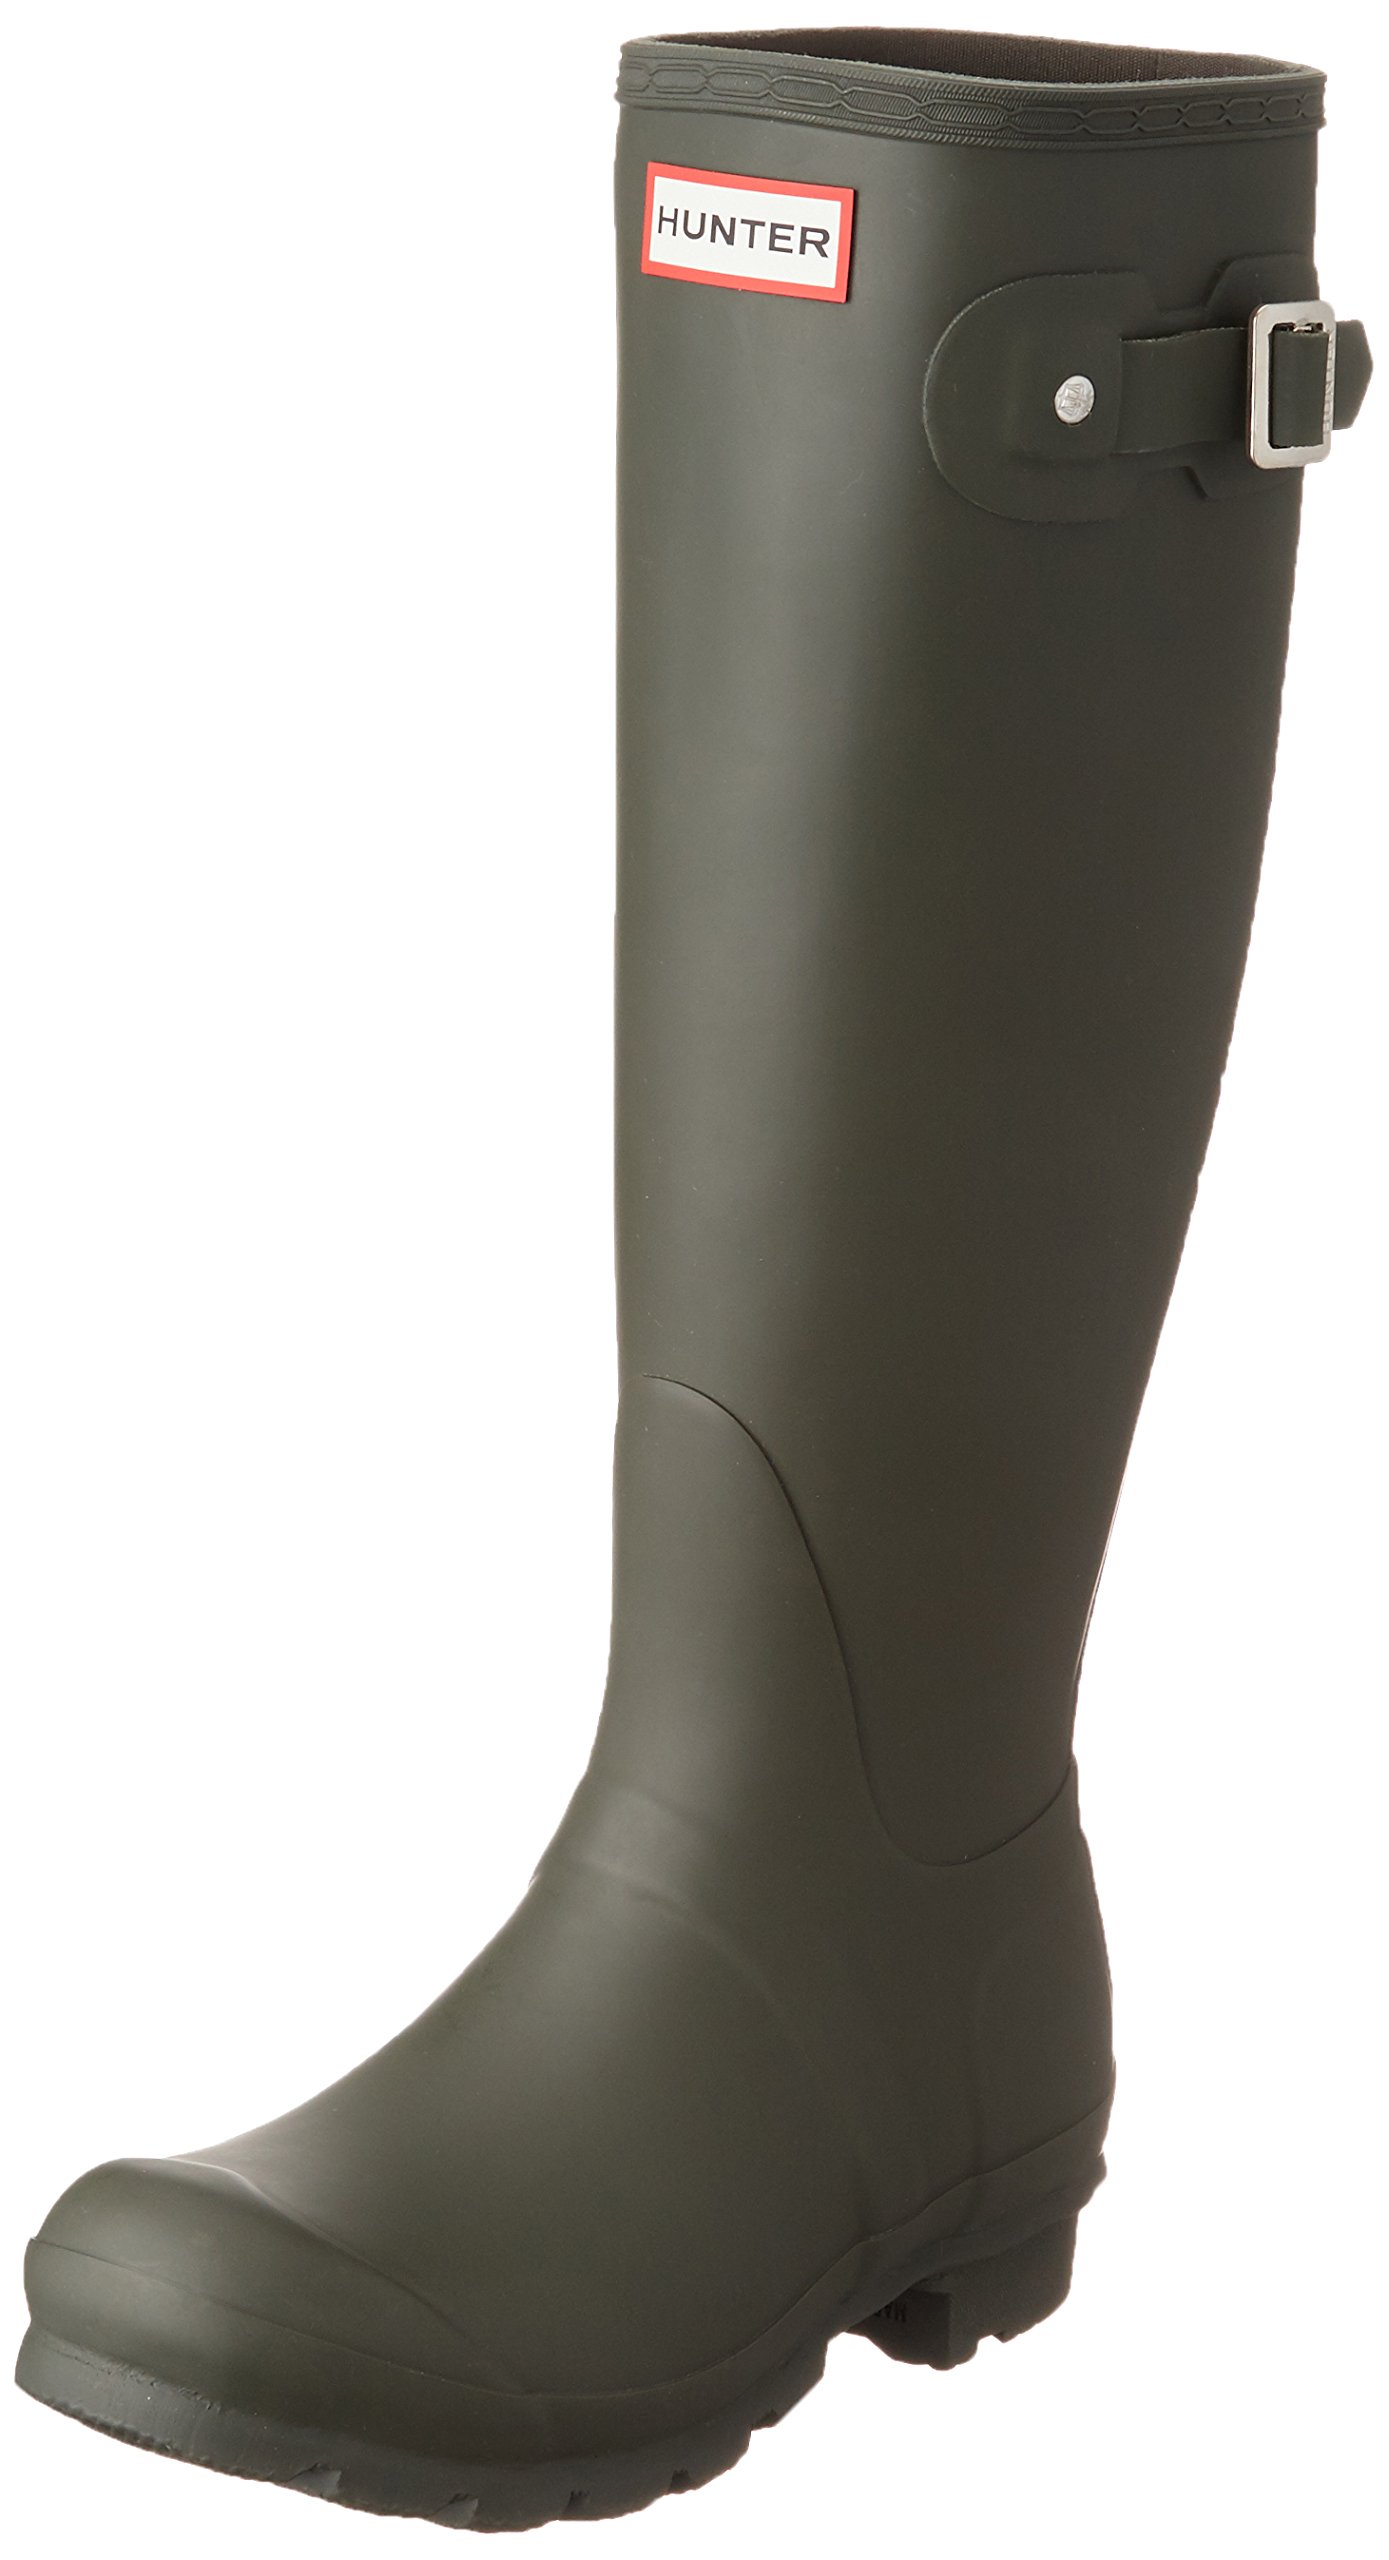 Hunter Women's Original Tall Dark Olive Rain Boots - 7 B(M) US